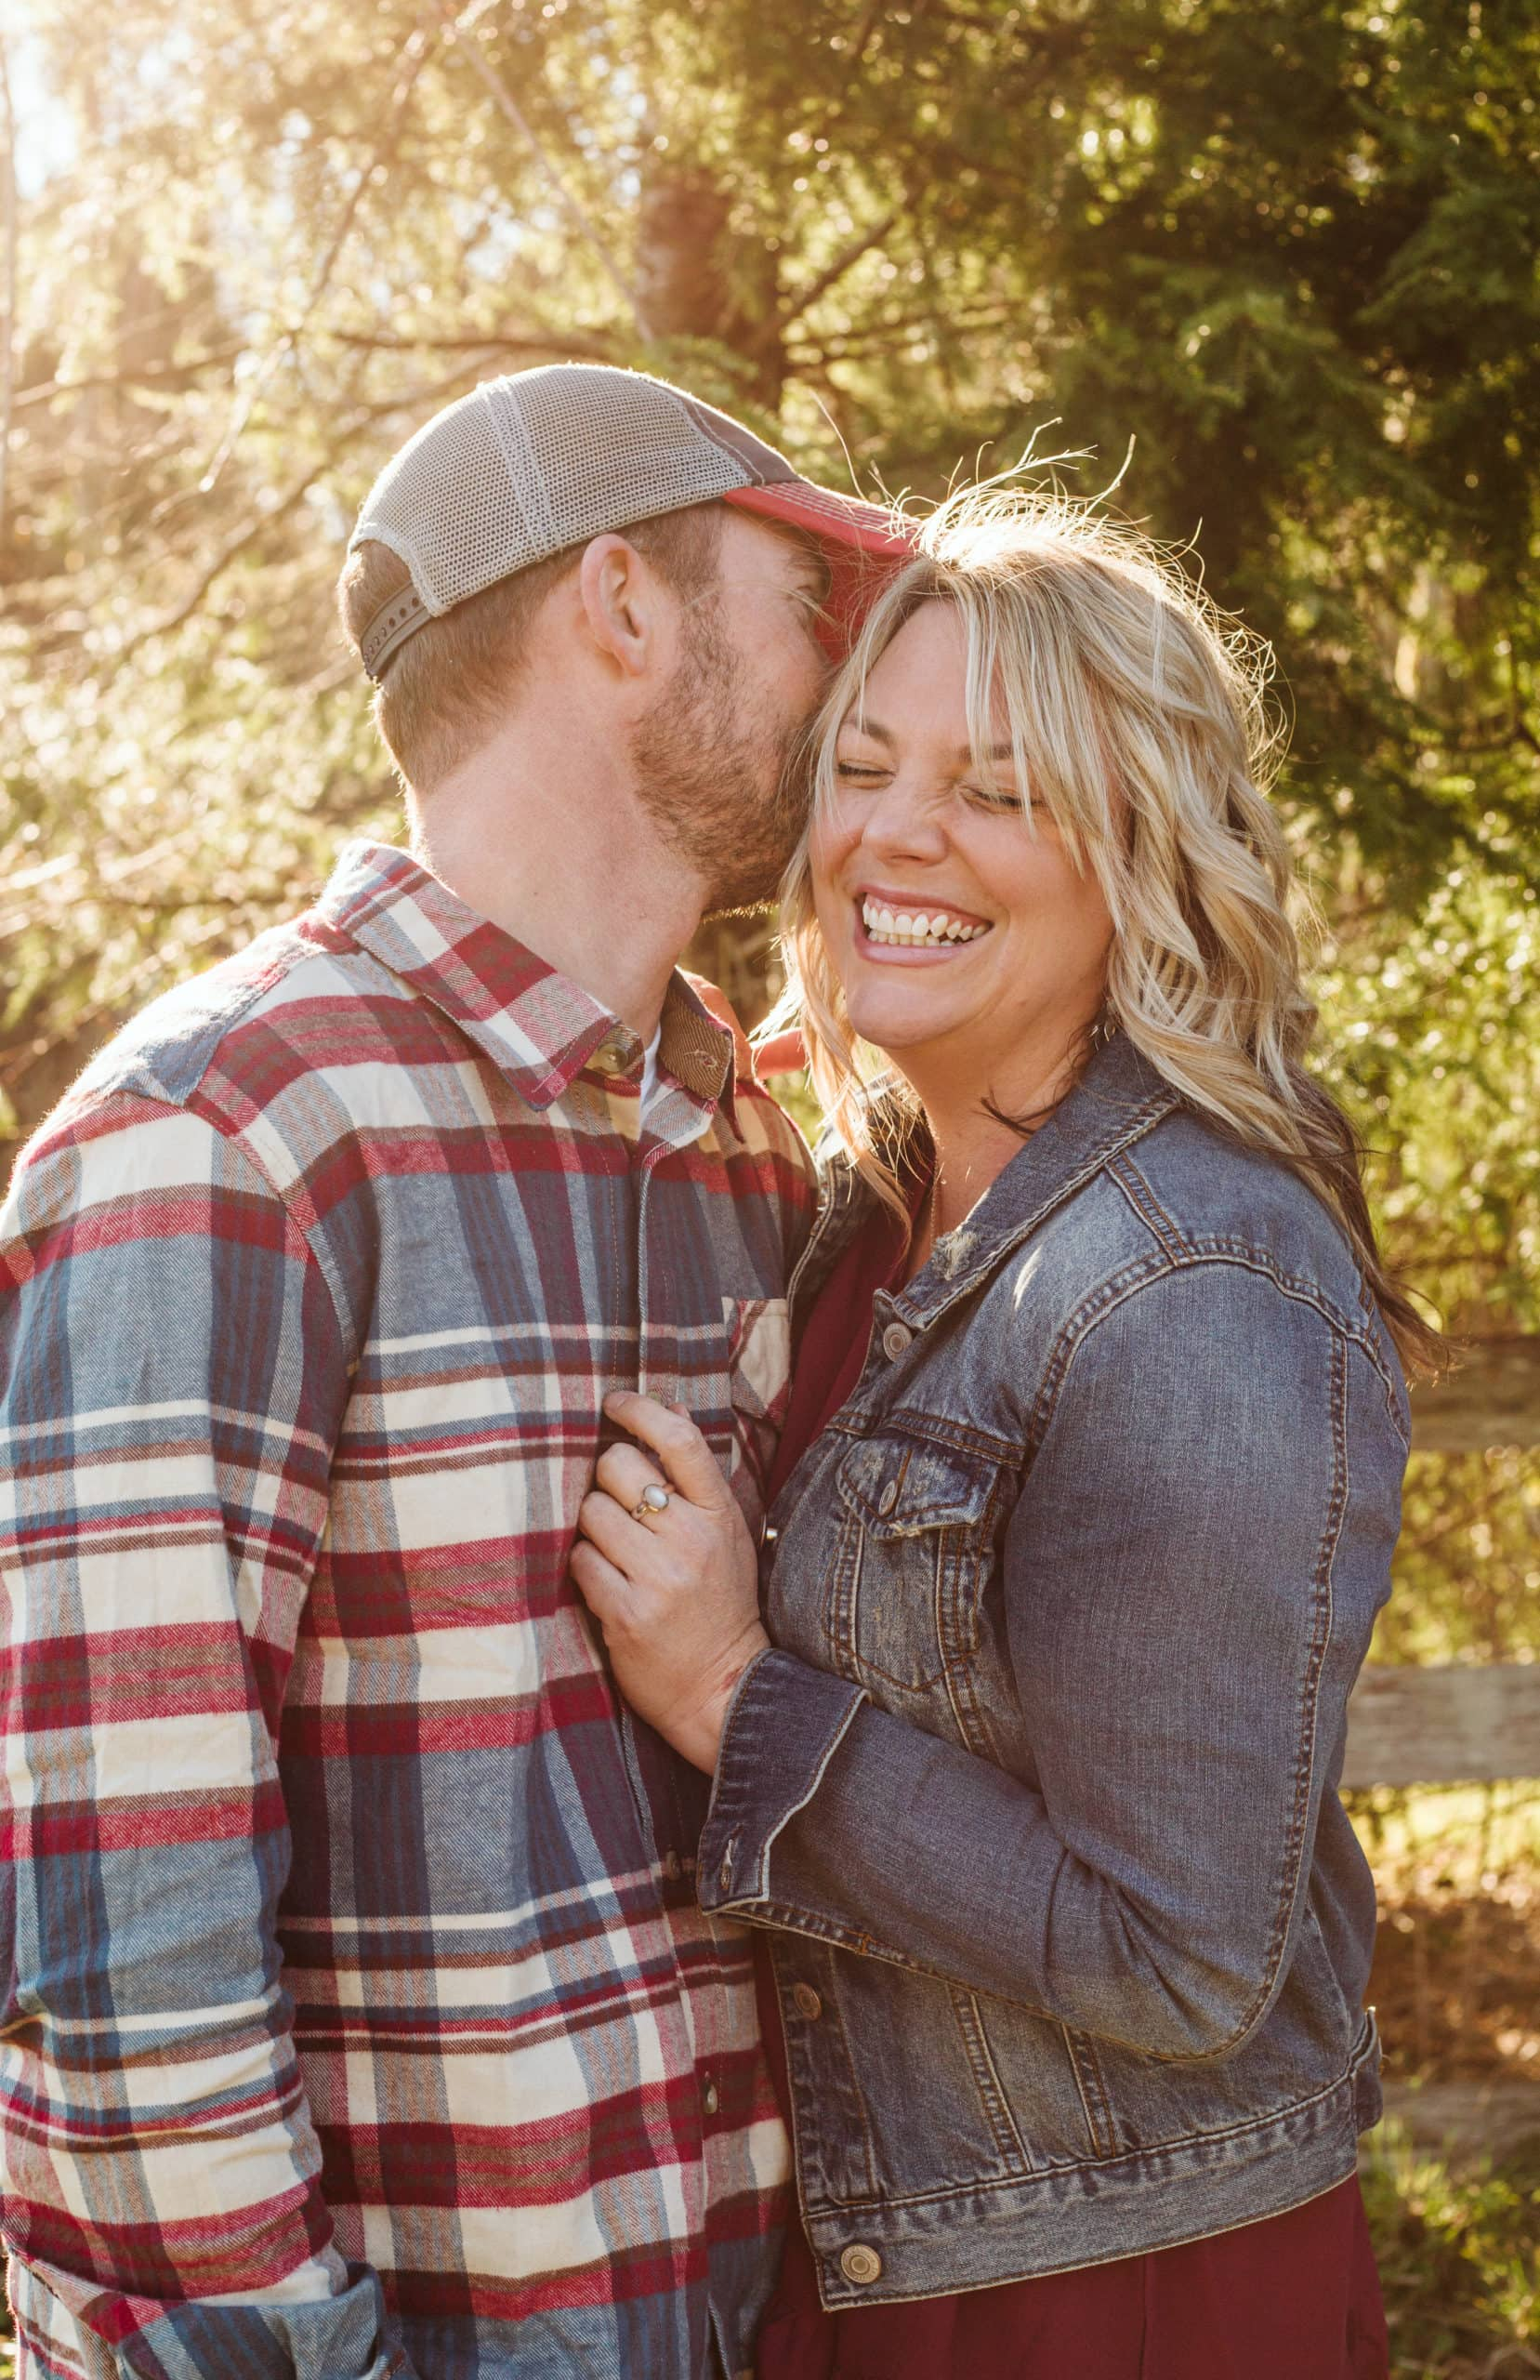 GW1 6298 scaled Seattle and Snohomish Wedding and Engagement Photography by GSquared Weddings Photography